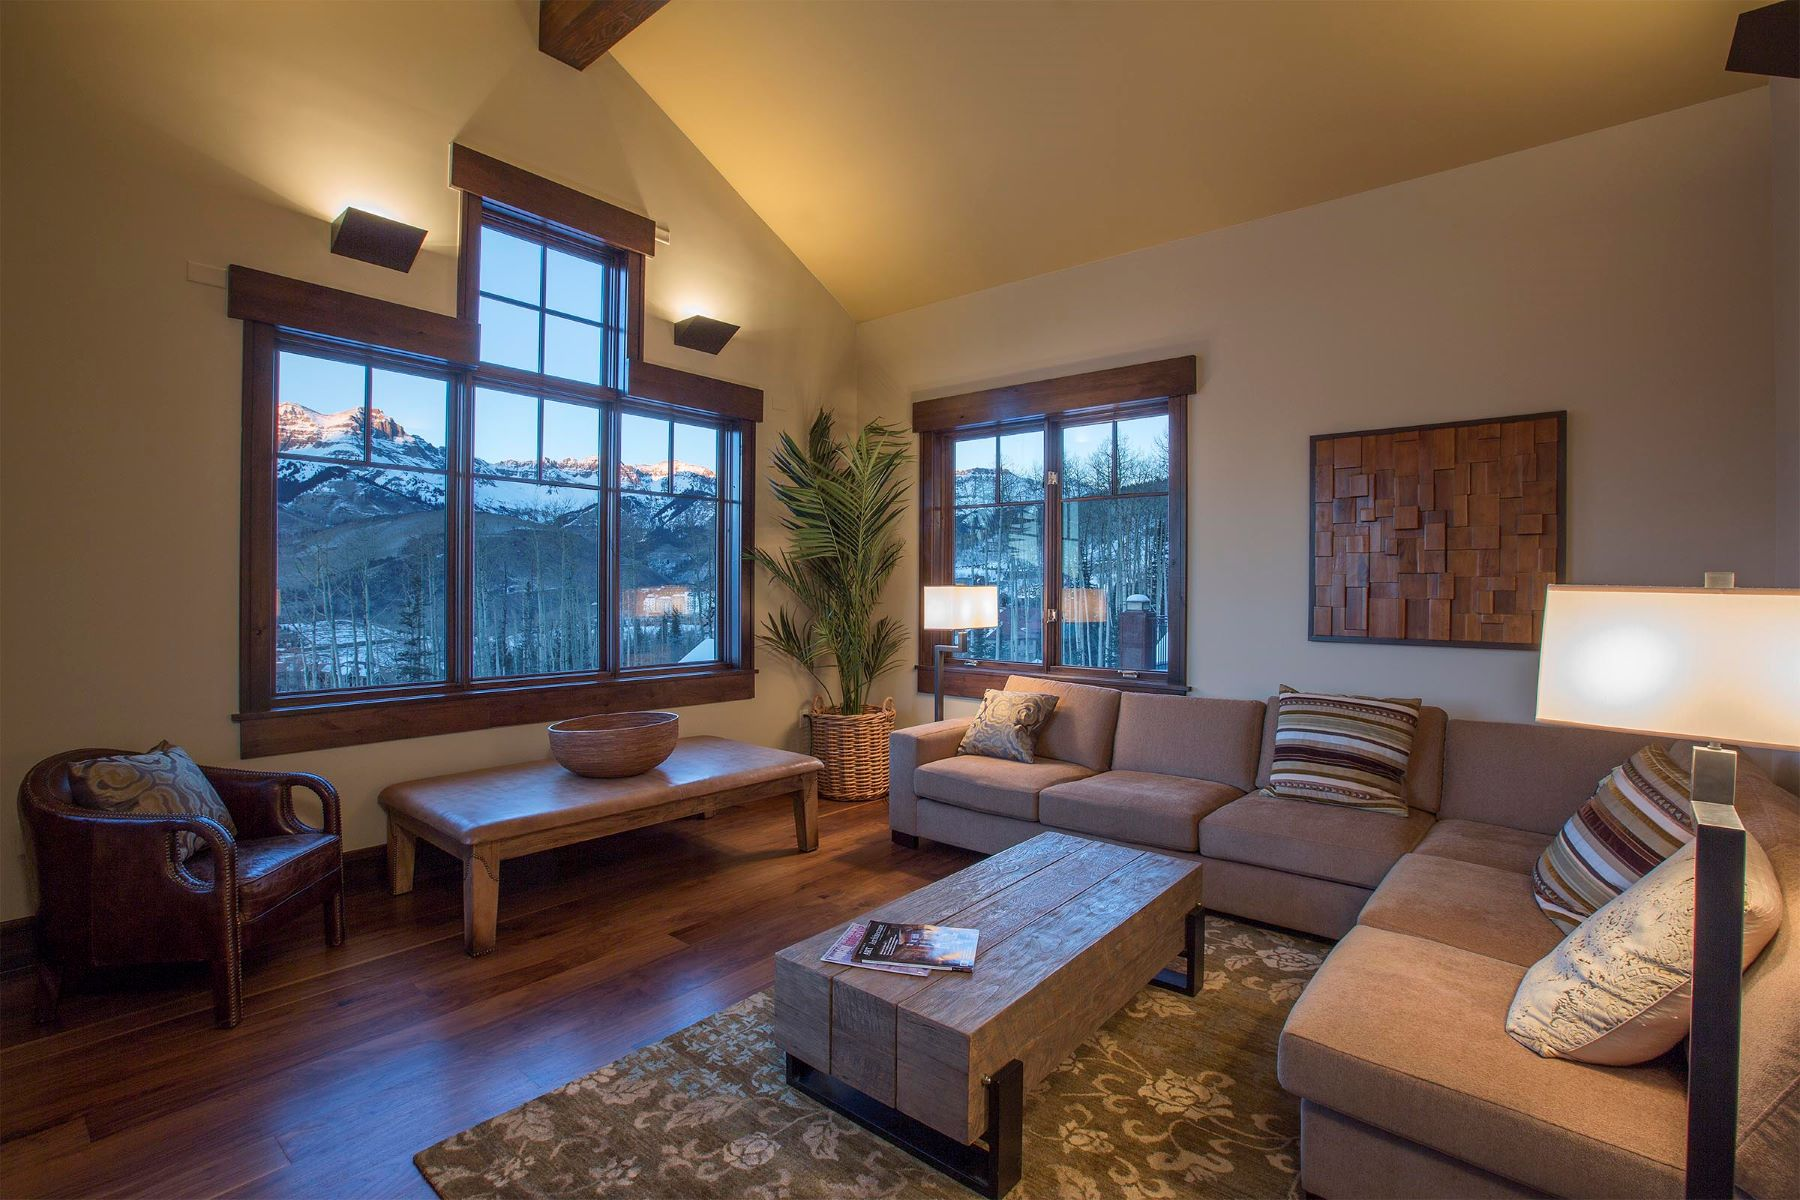 Condominiums for Sale at Elkstone 21, Unit 401 12 Elkstone Place, Unit 401 Telluride, Colorado 81435 United States